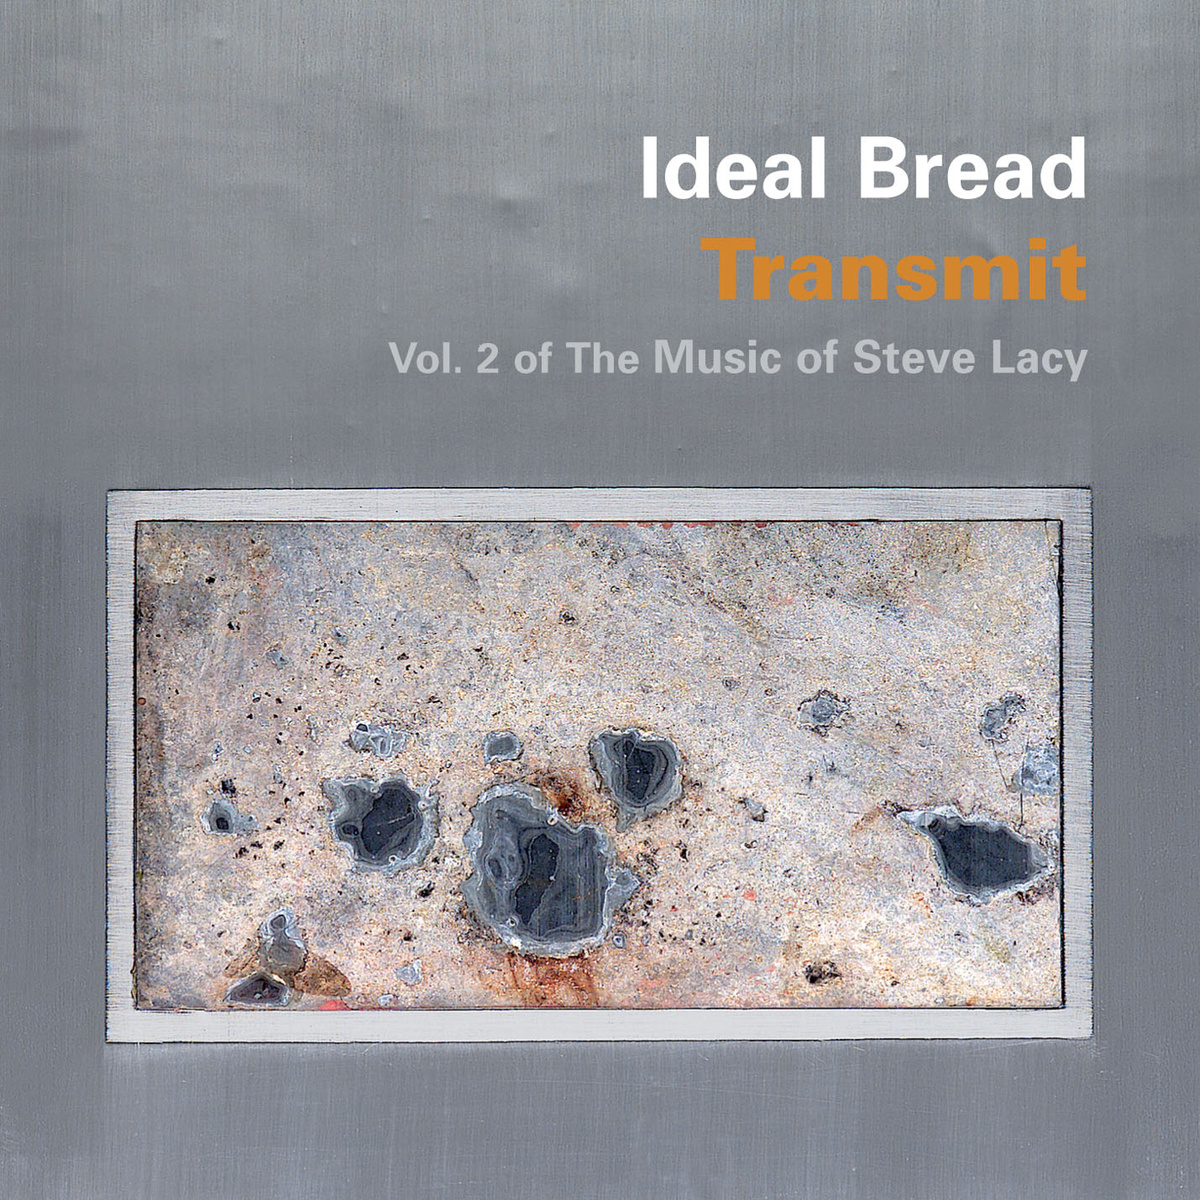 Ideal Bread — Transmit: Vol. 2 of the Music of Steve Lacy